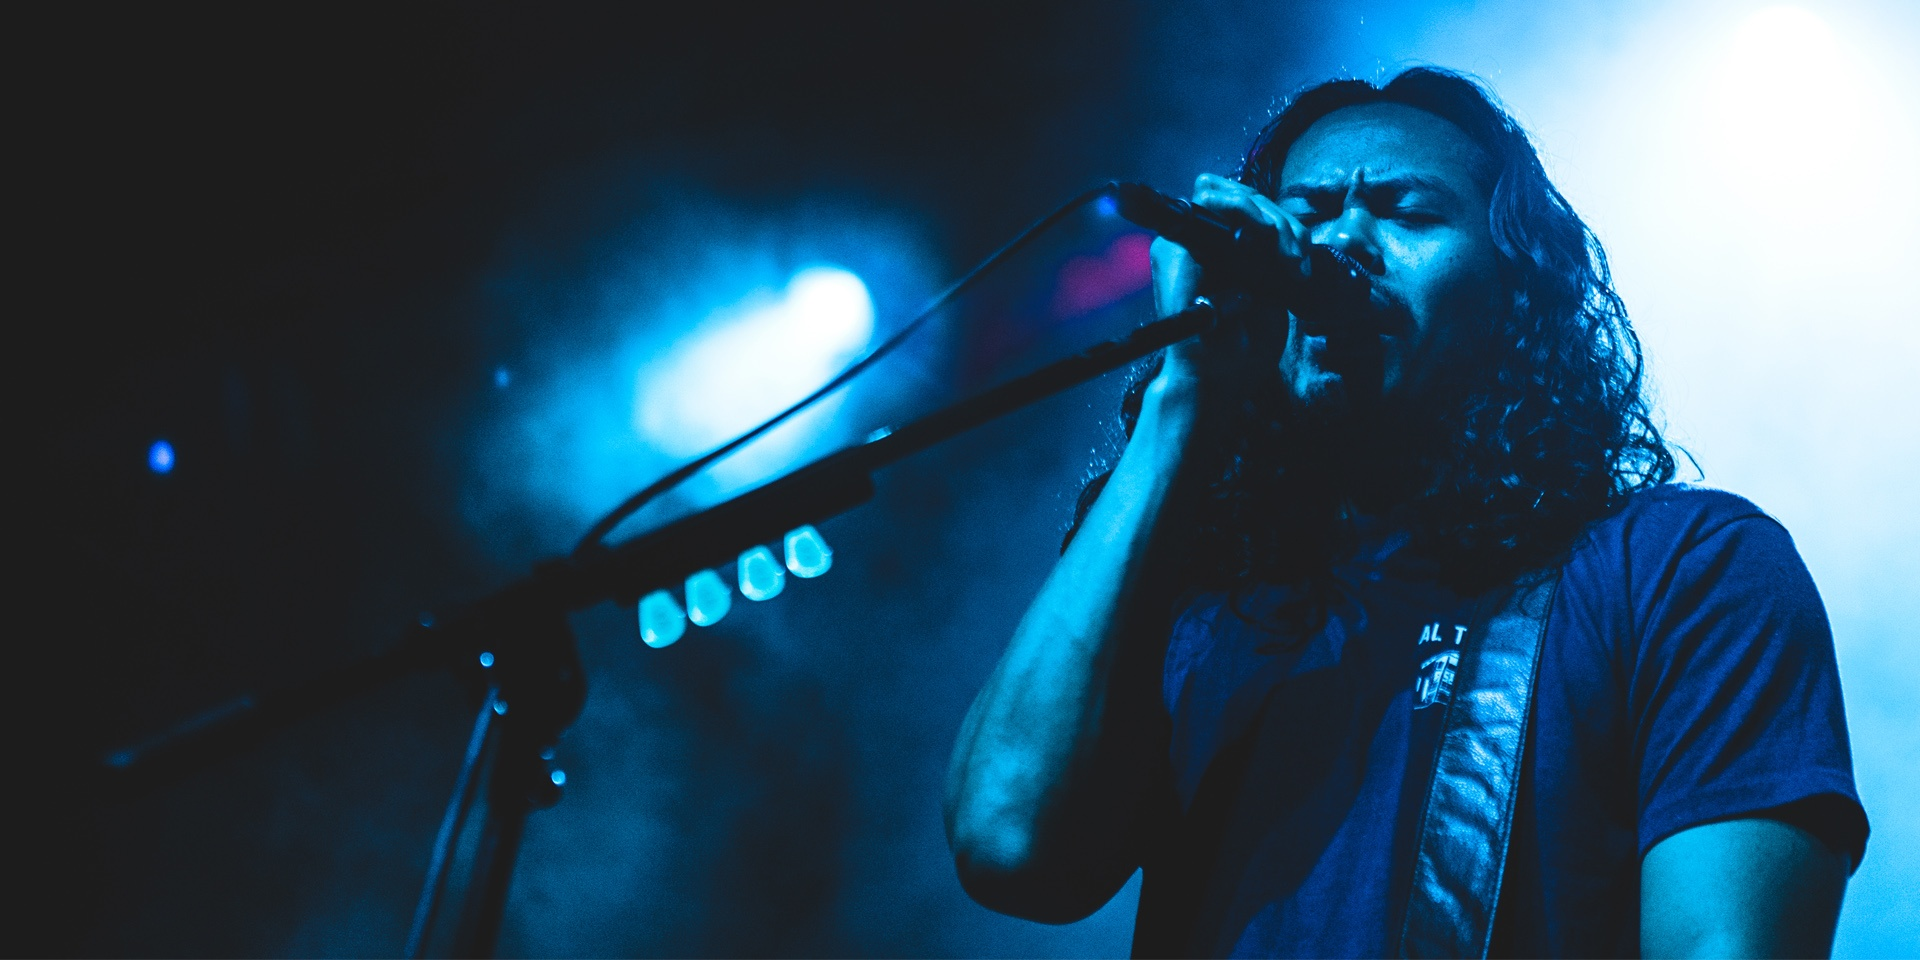 PHOTO GALLERY: The Temper Trap's glorious live return to Singapore